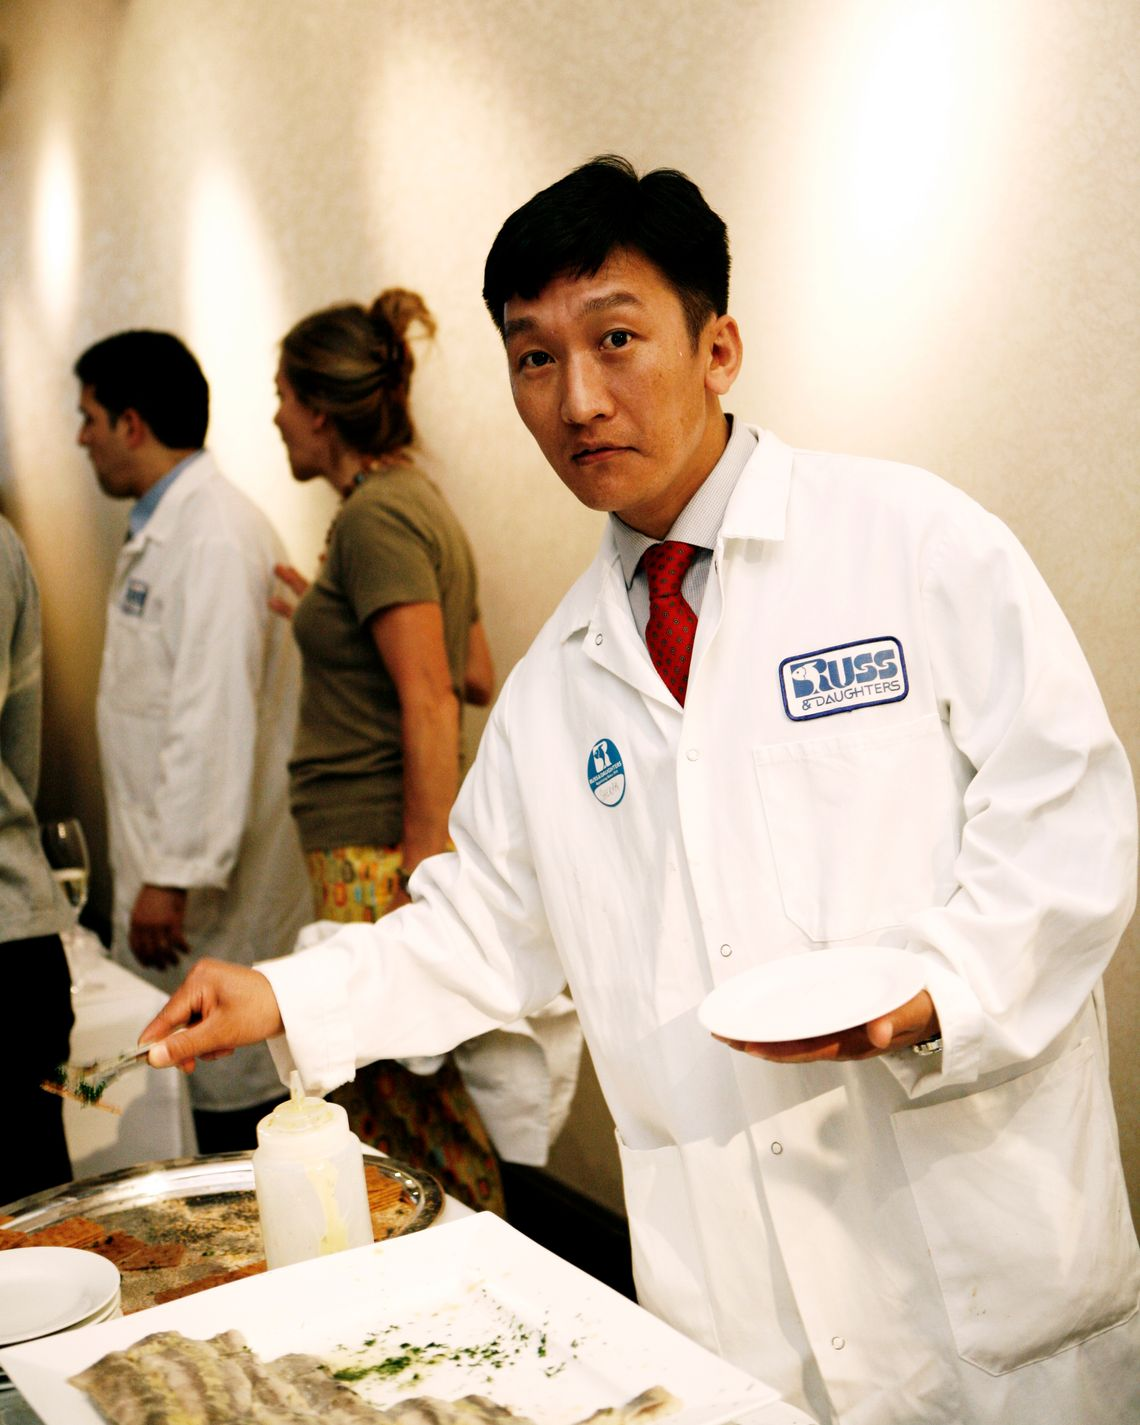 A man stands in a white coat looking into the camera, while he reaches with a utensil to scoop smoked fish